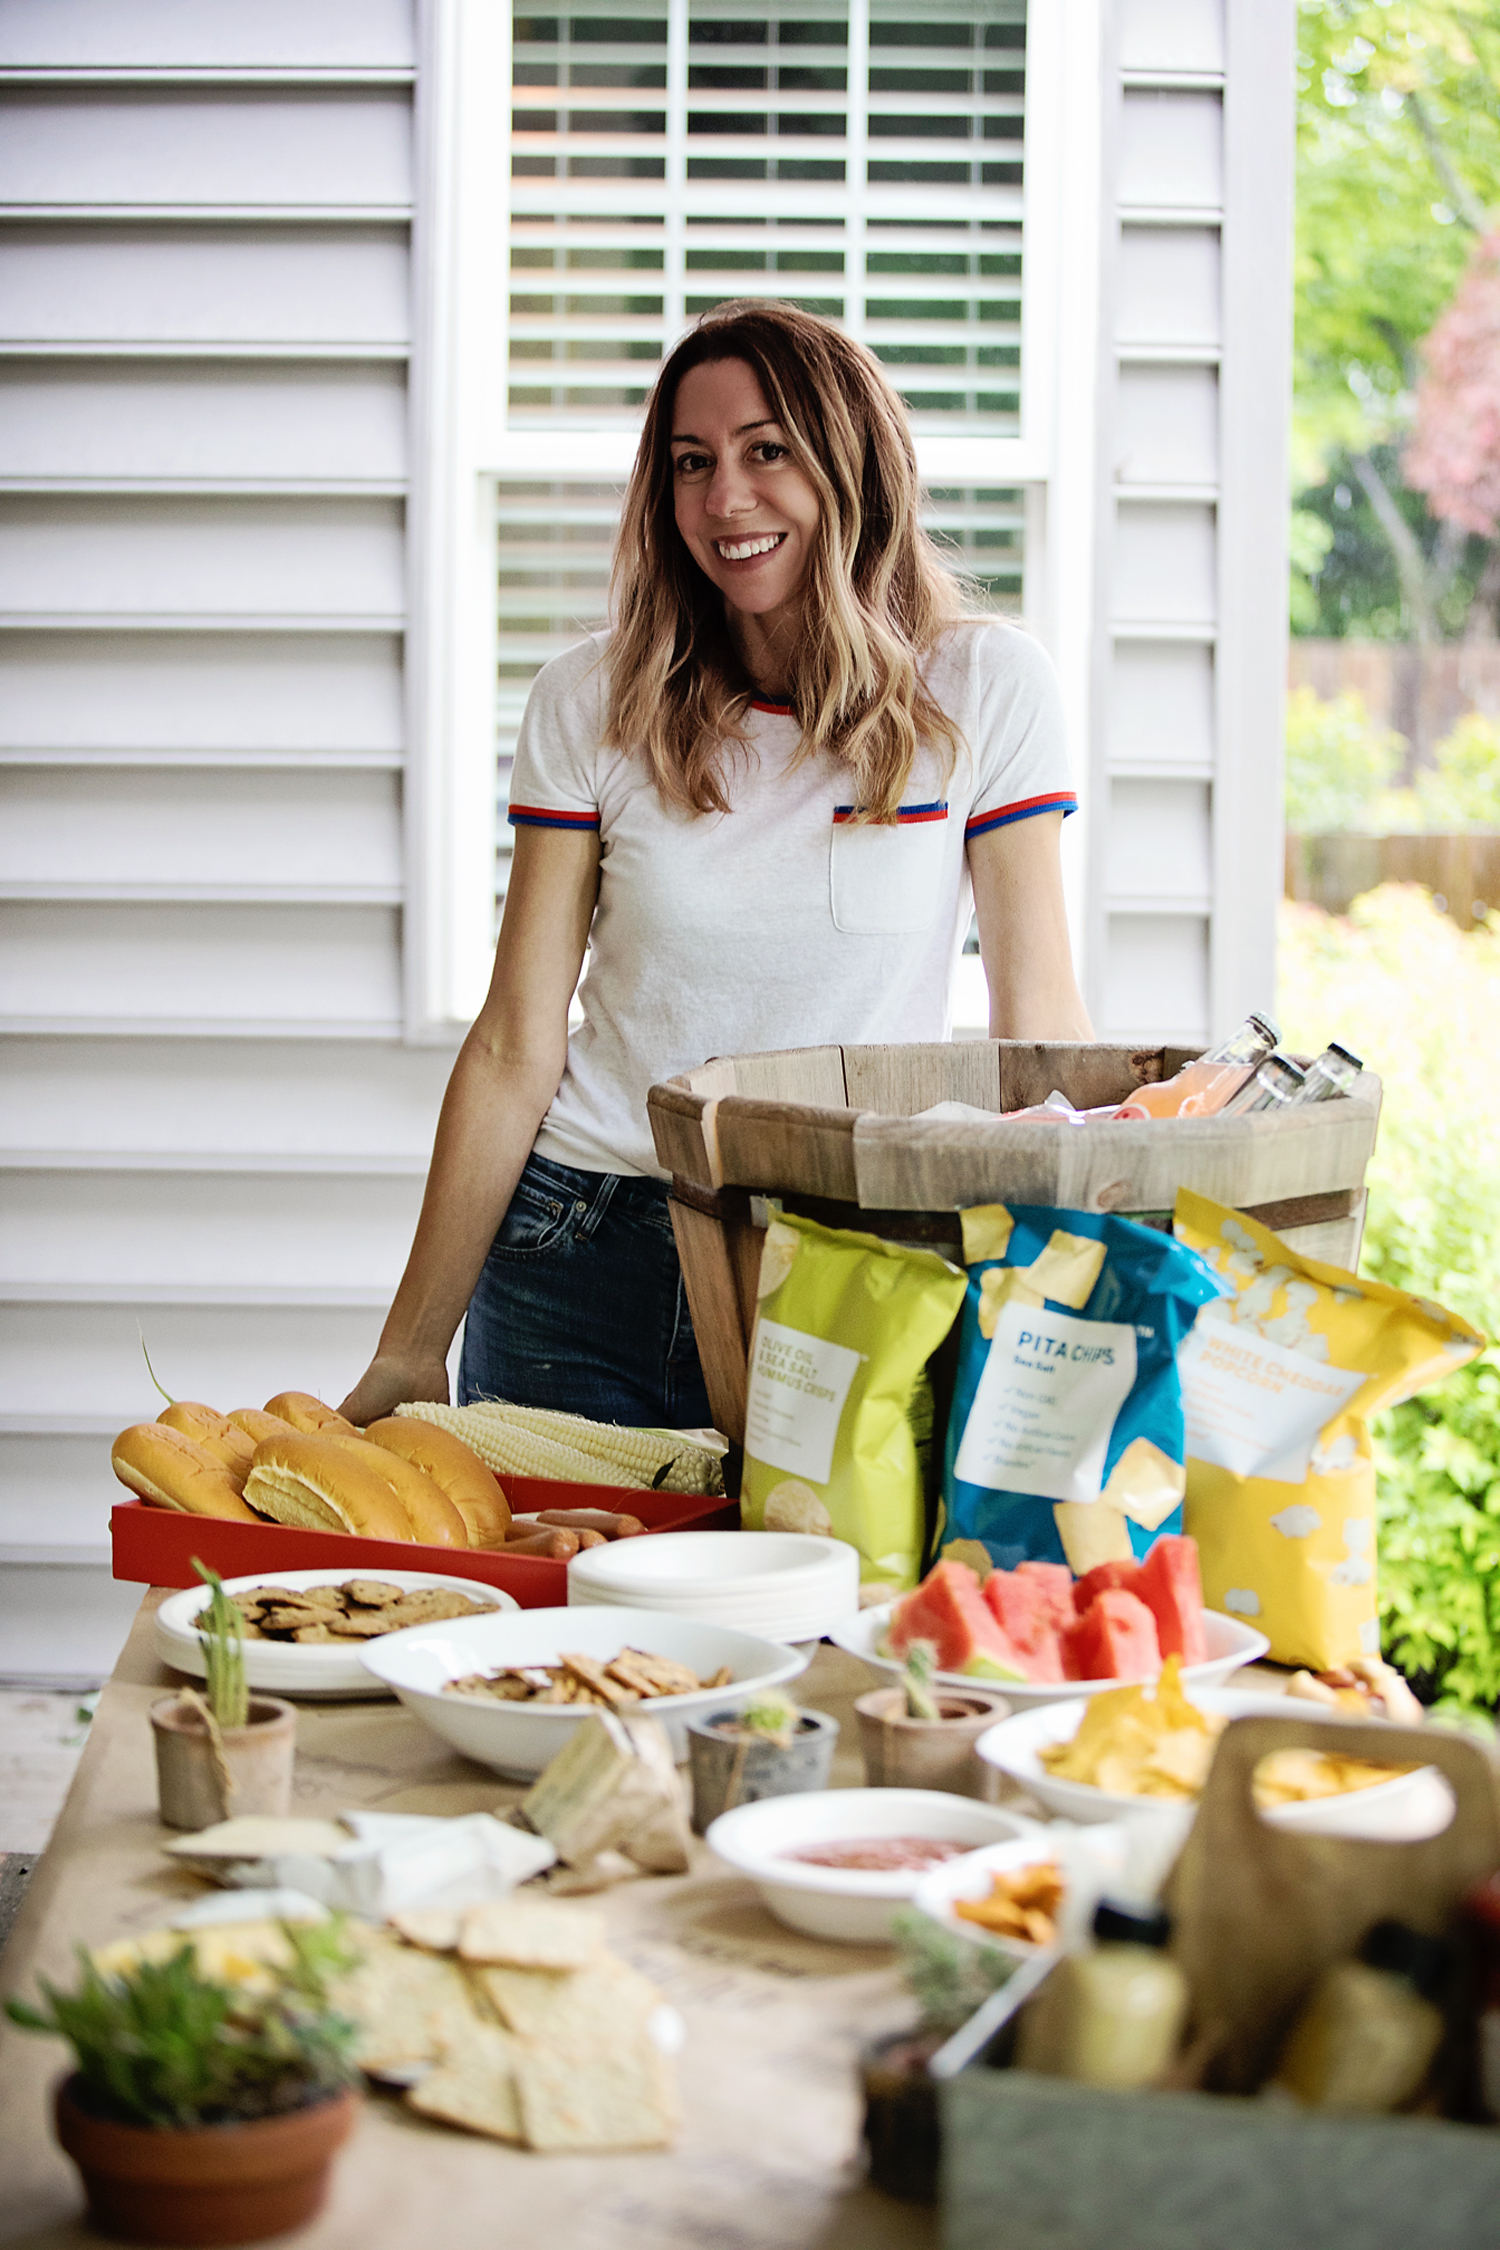 The Motherchic brandless barbecue